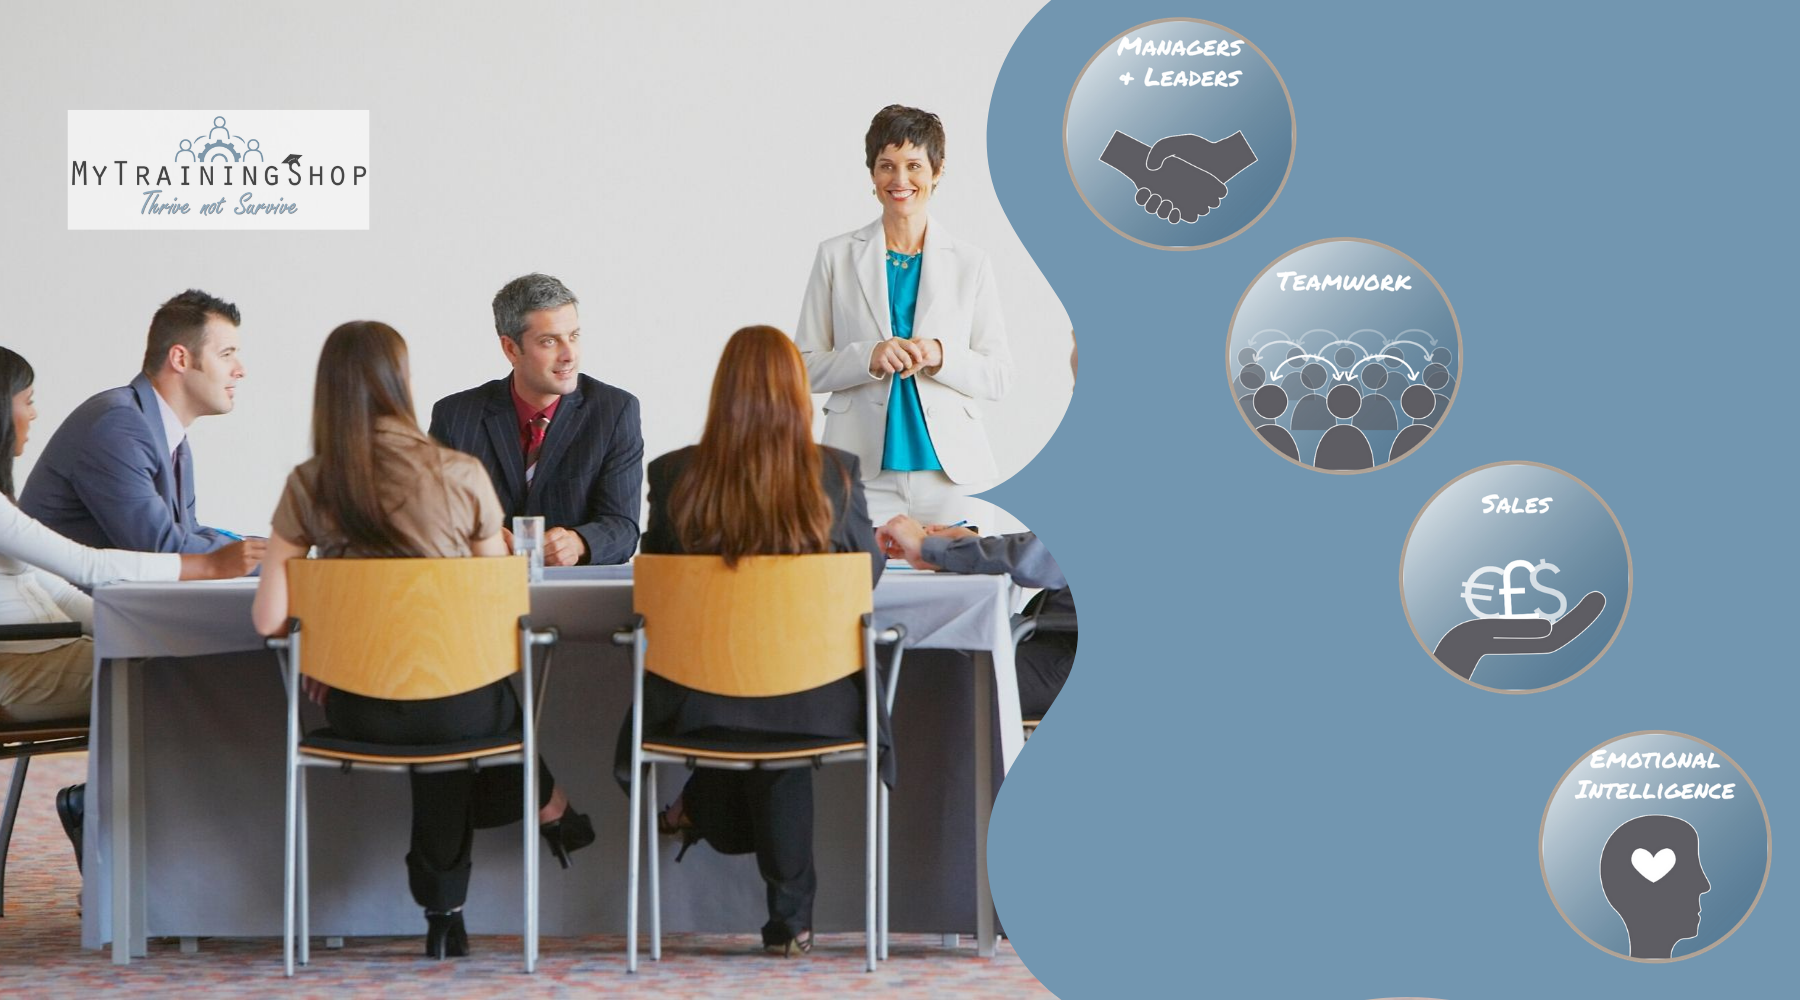 Workshops for improved communication for leaders, sales people and workplace teams